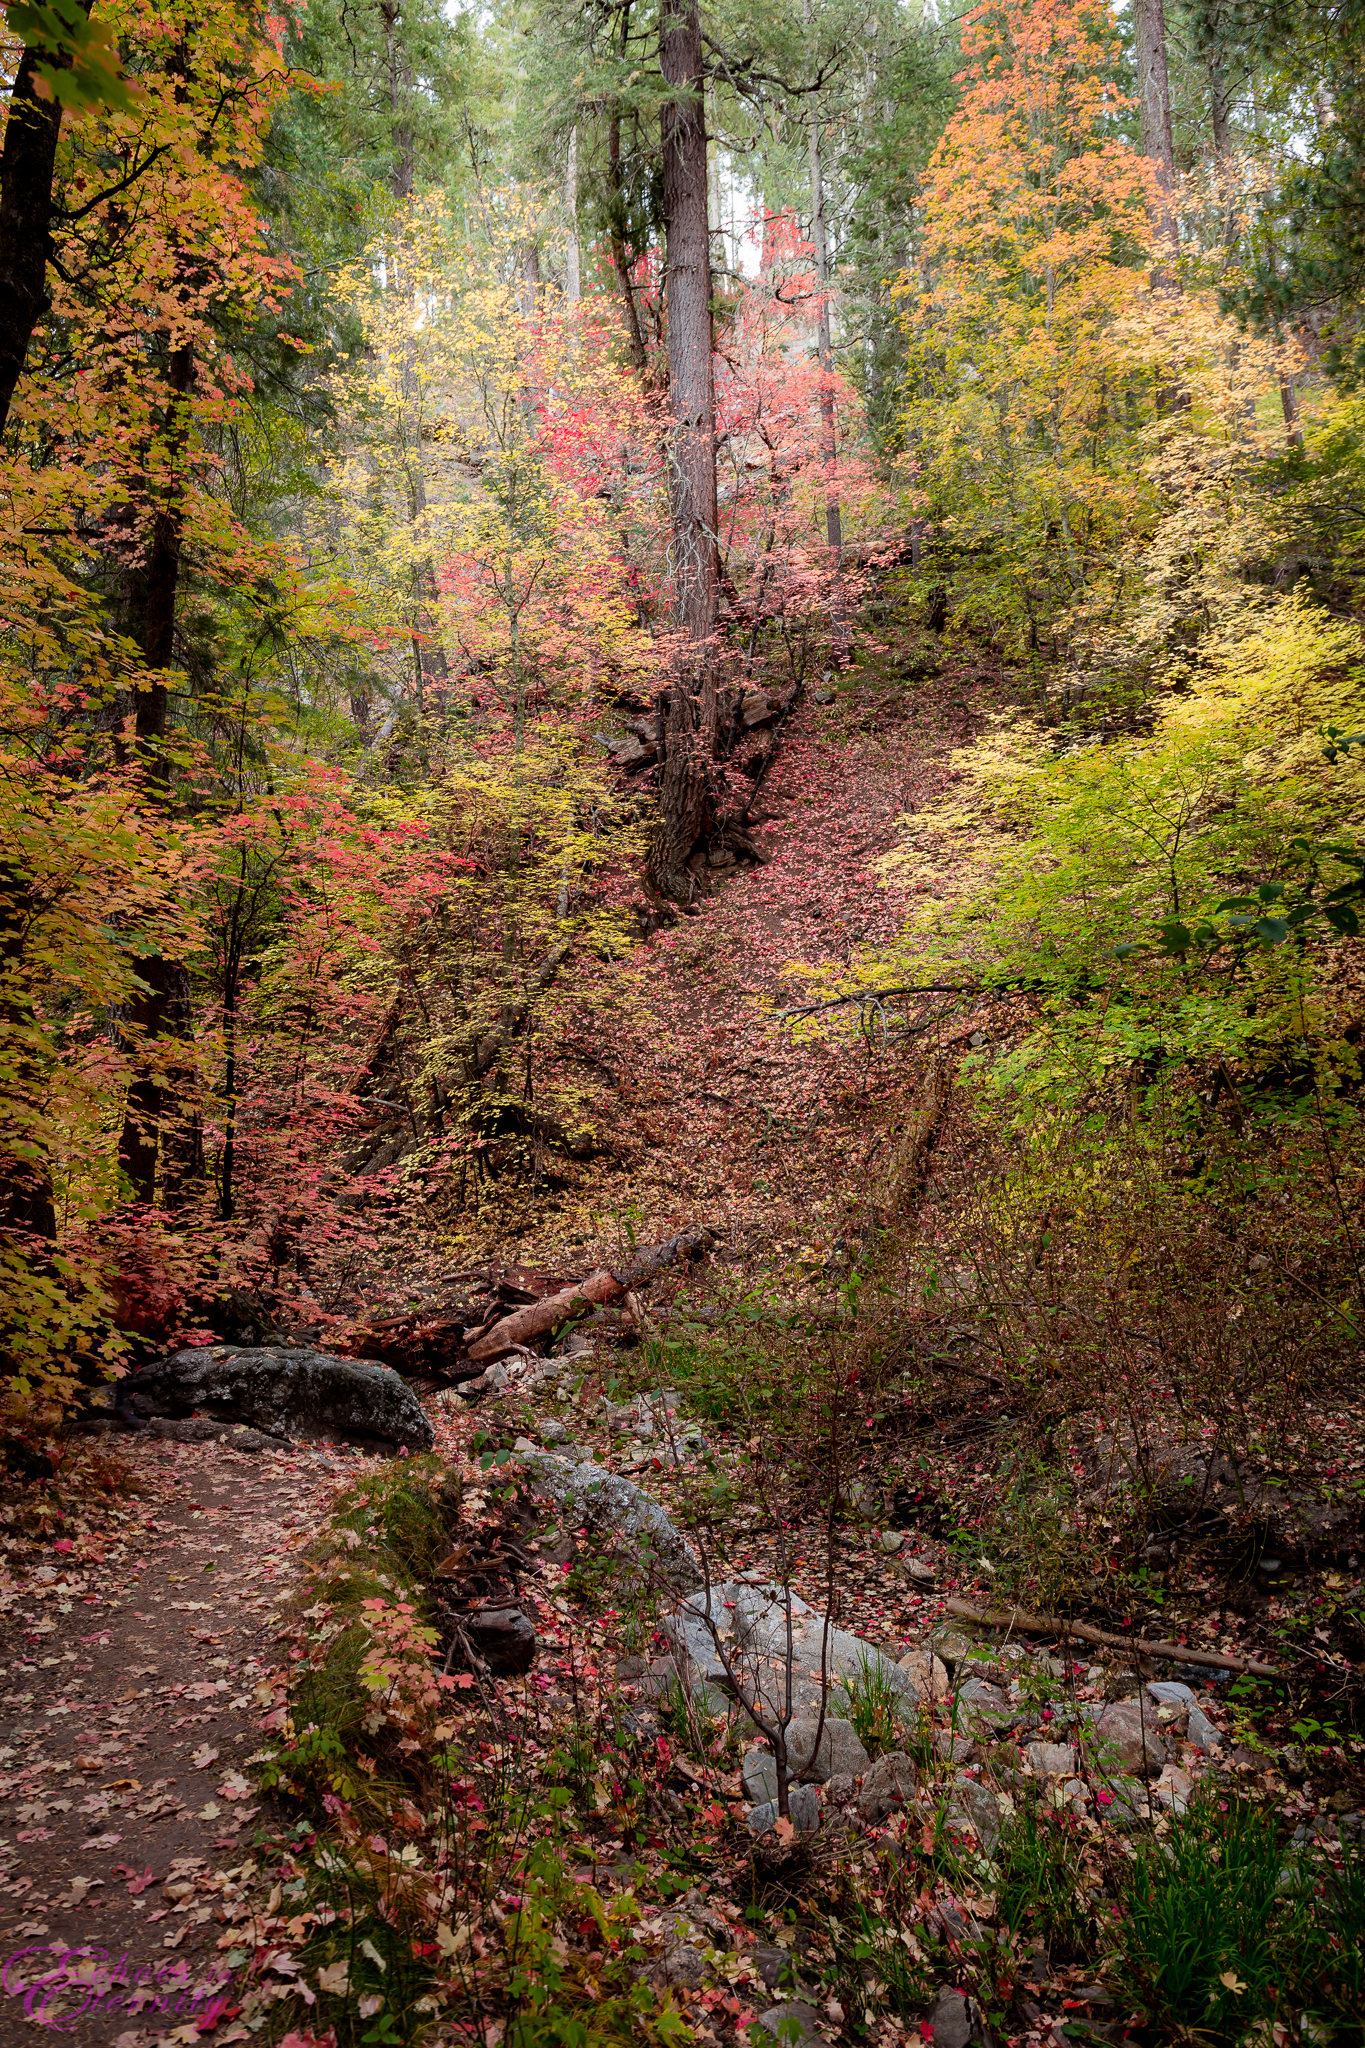 Fall Colors Mt. Lemmon Tucson Arizona Landscape Photographer 99